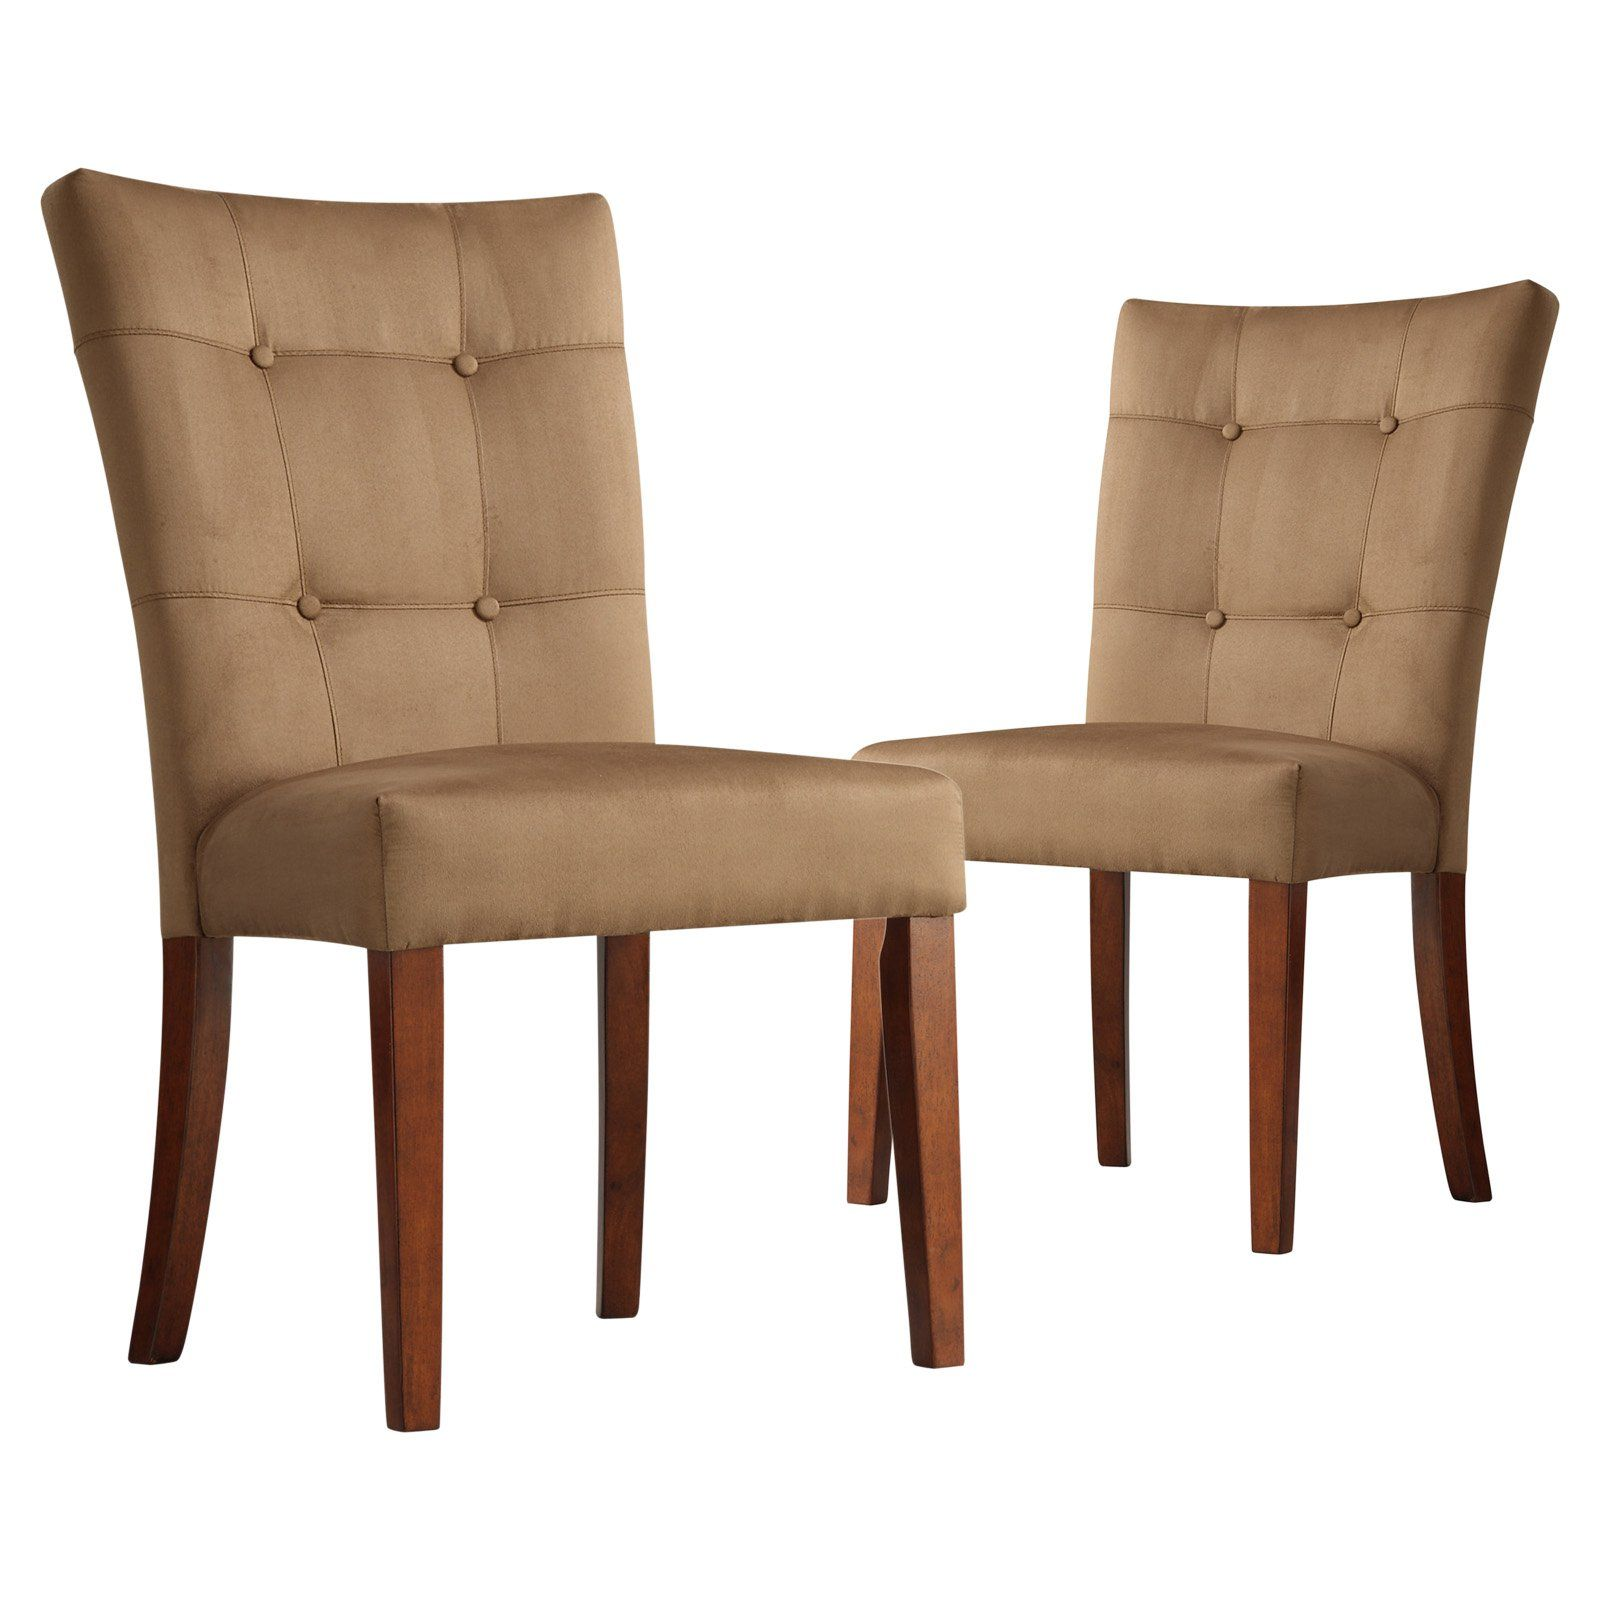 Have to have it Homelegance Tufted Parsons Dining Chair Set of